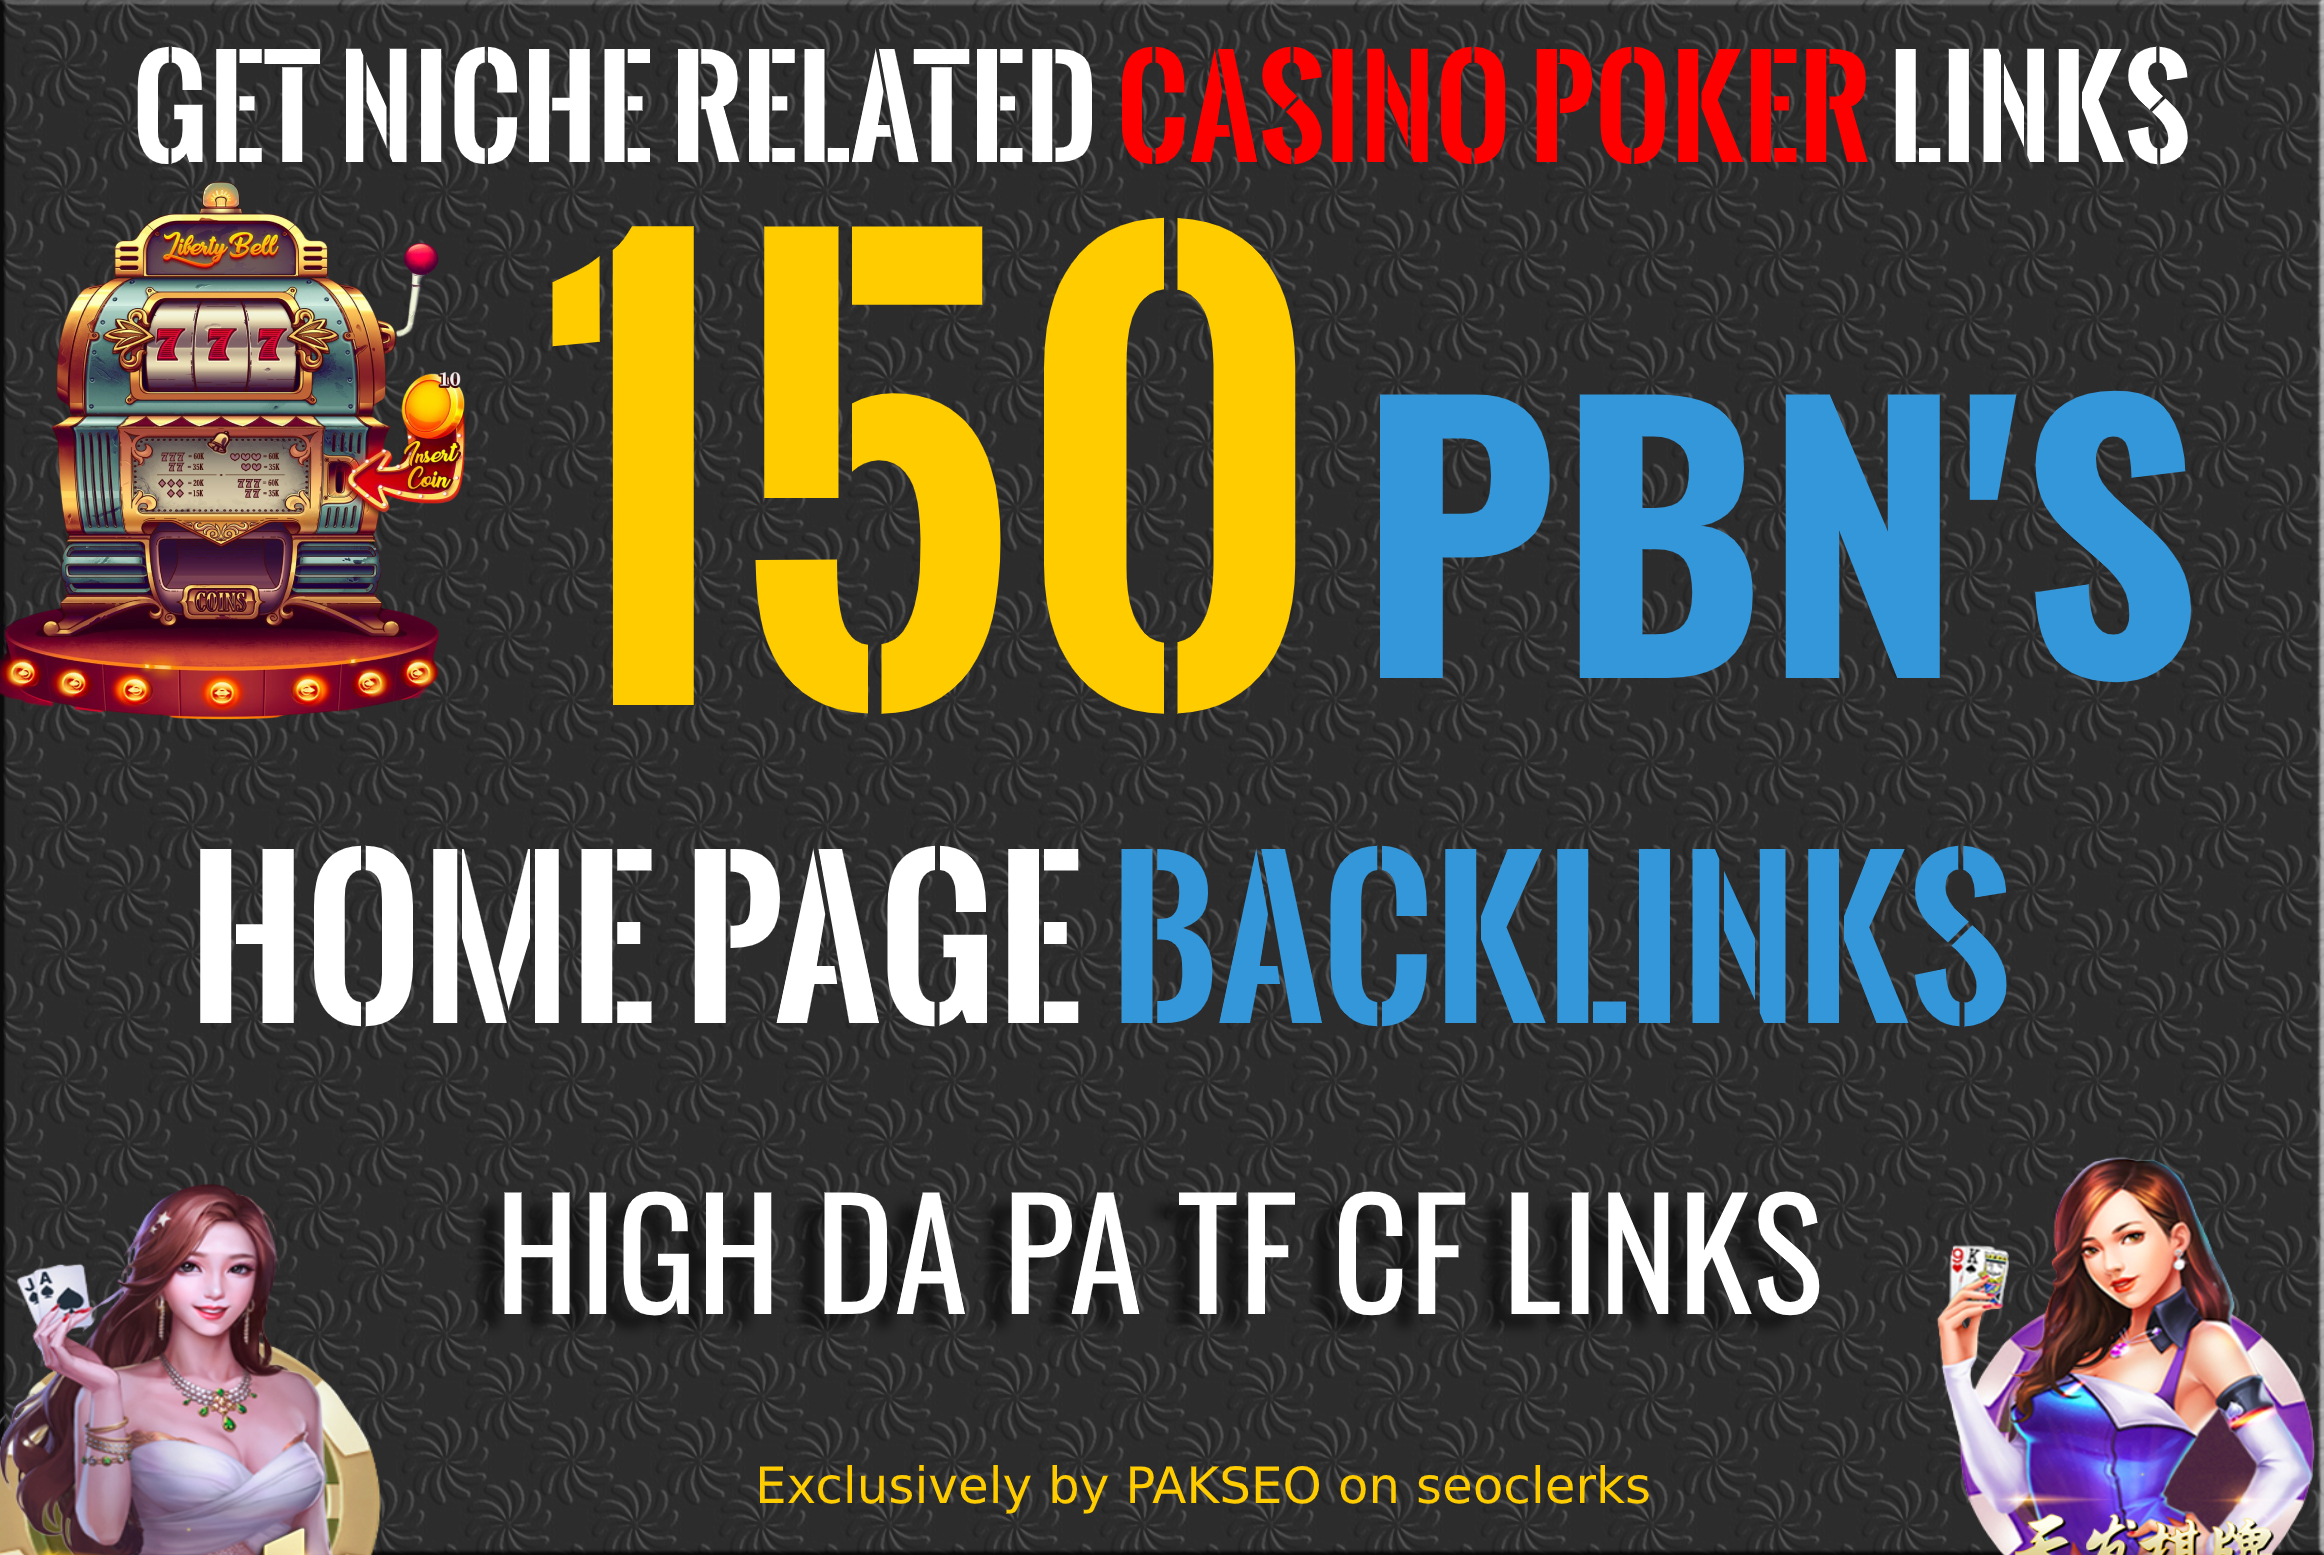 Get 150 Niche Pbn Casino,  Gambling,  Poker,  Judi Bola Related High DA PA Pbns LINKS